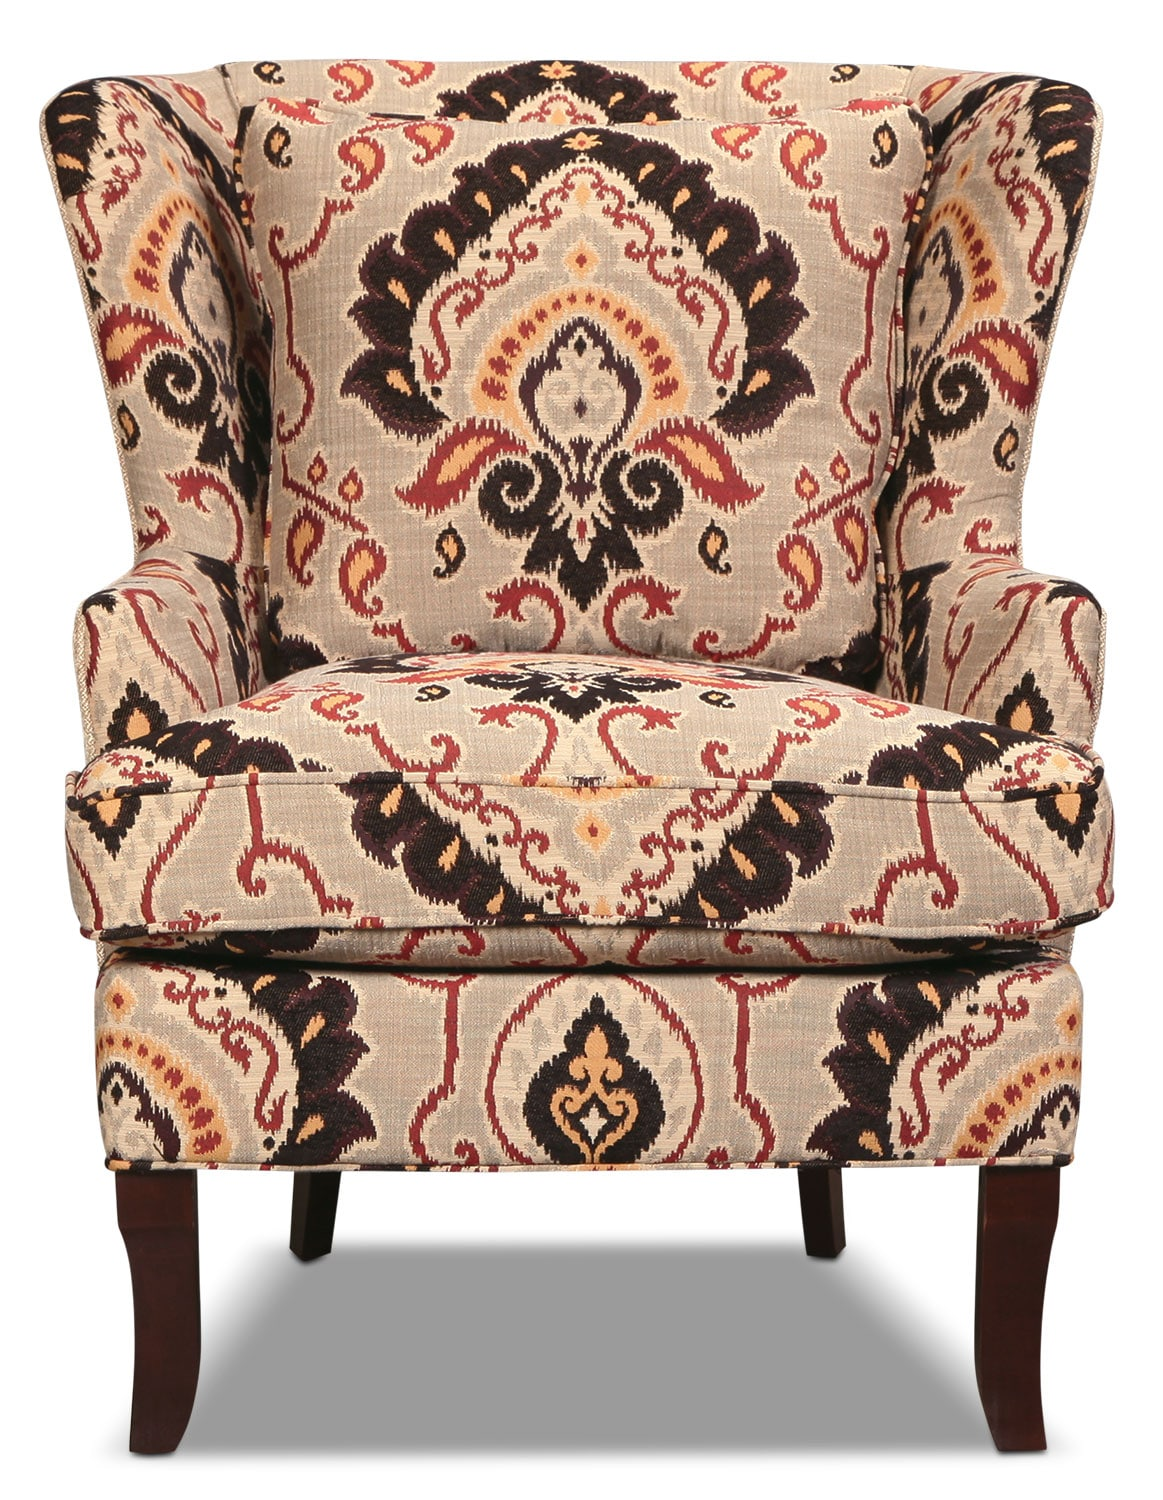 Ludlow Accent Chair - Tapestry